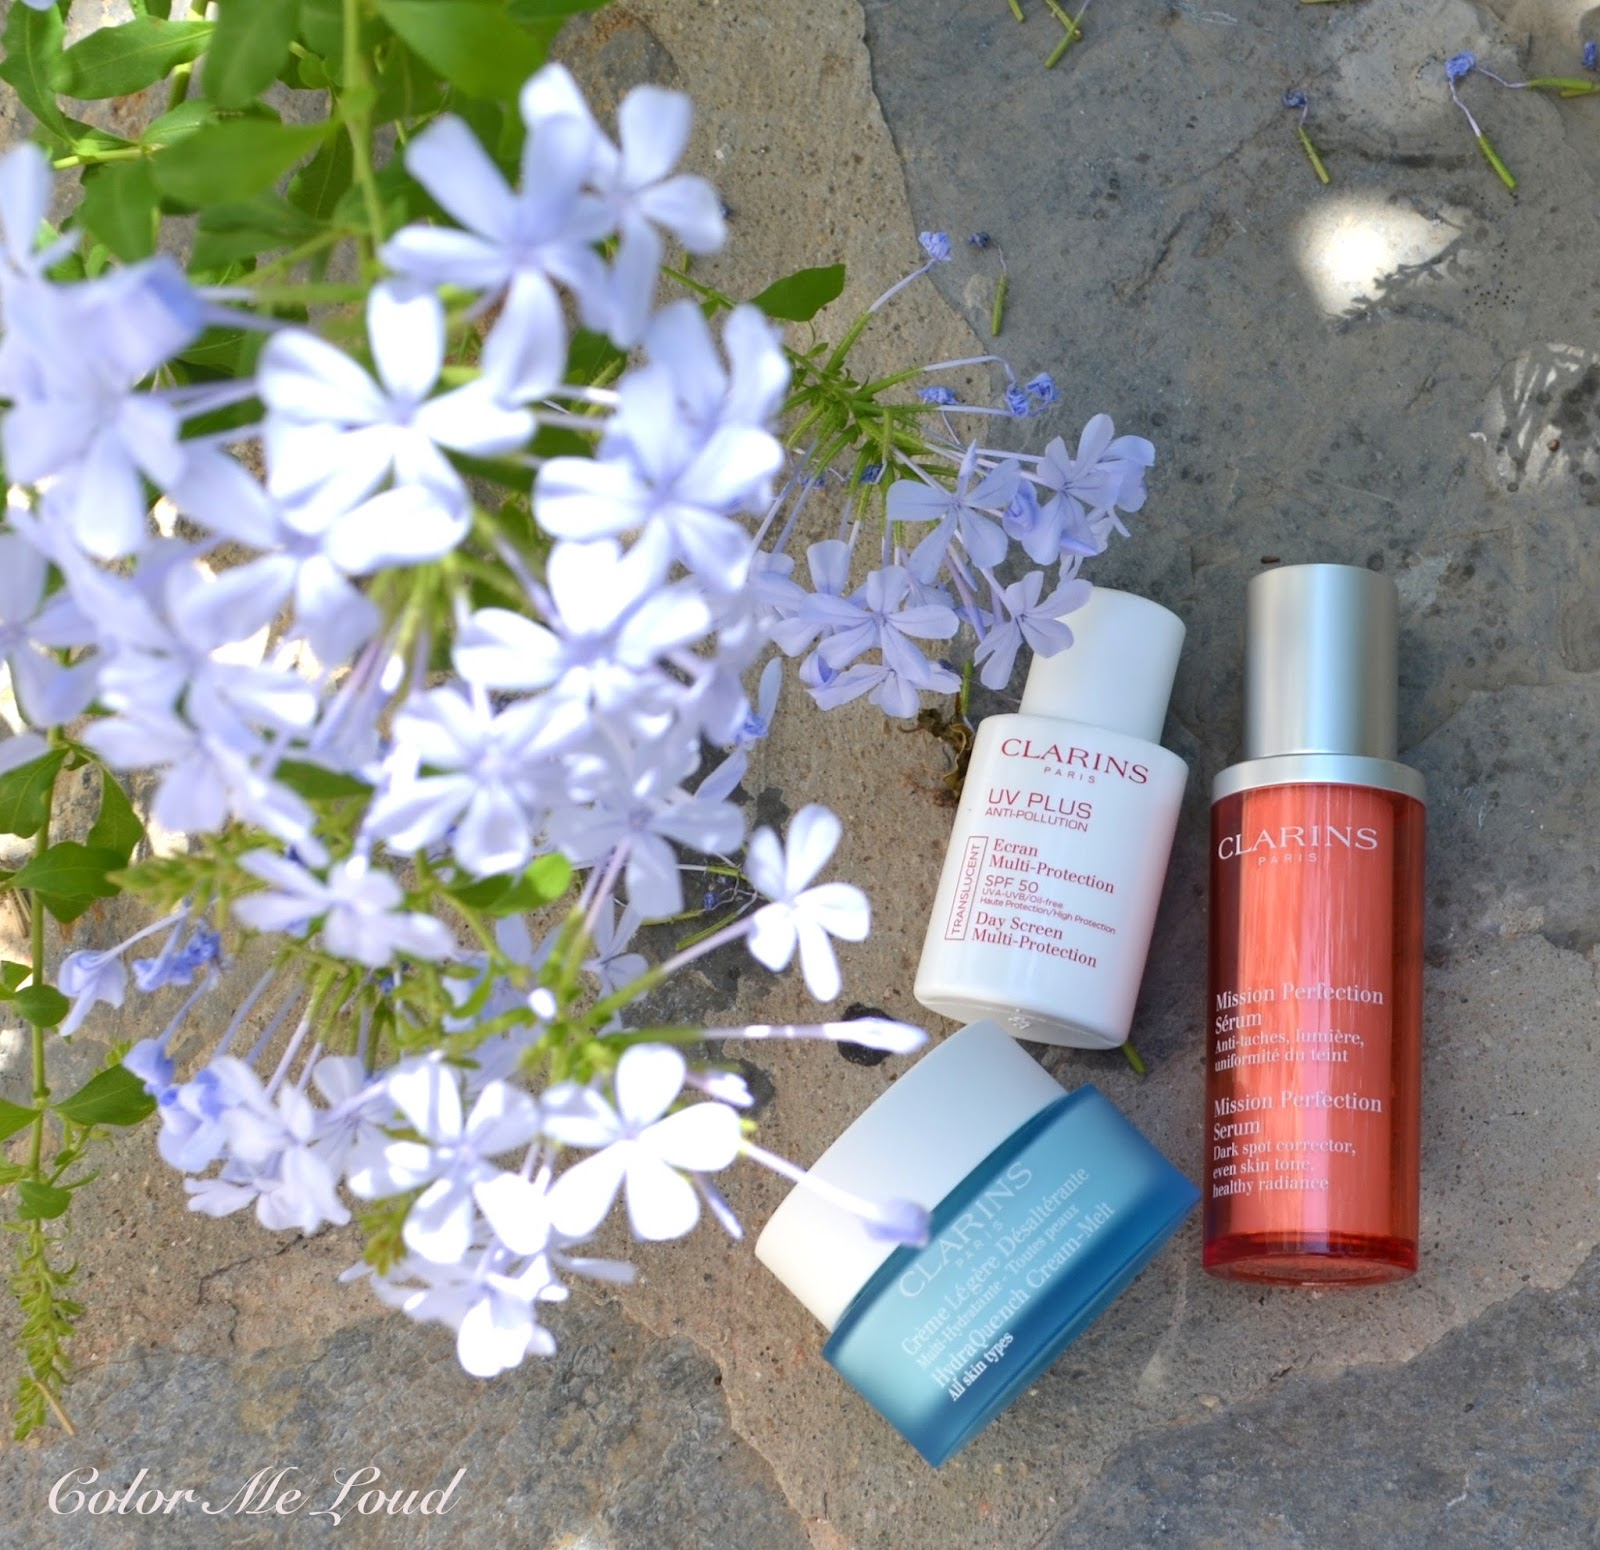 Mission Perfection Eye Cream by Clarins #3